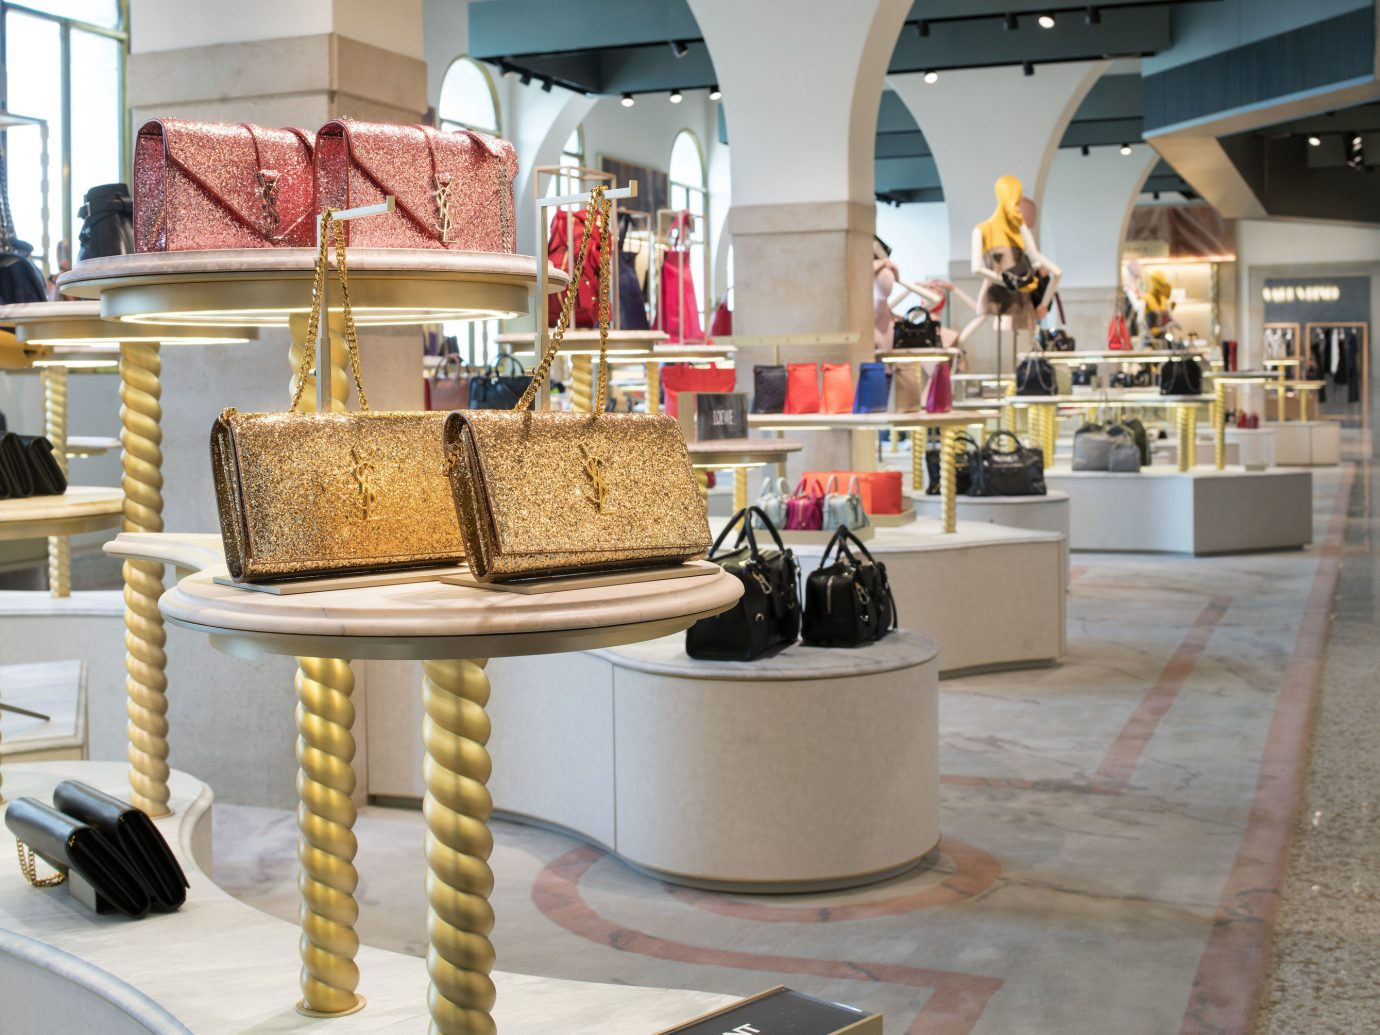 shopping Style + Design Travel Trends Trip Ideas indoor shoe store retail interior design bakery outlet store Boutique